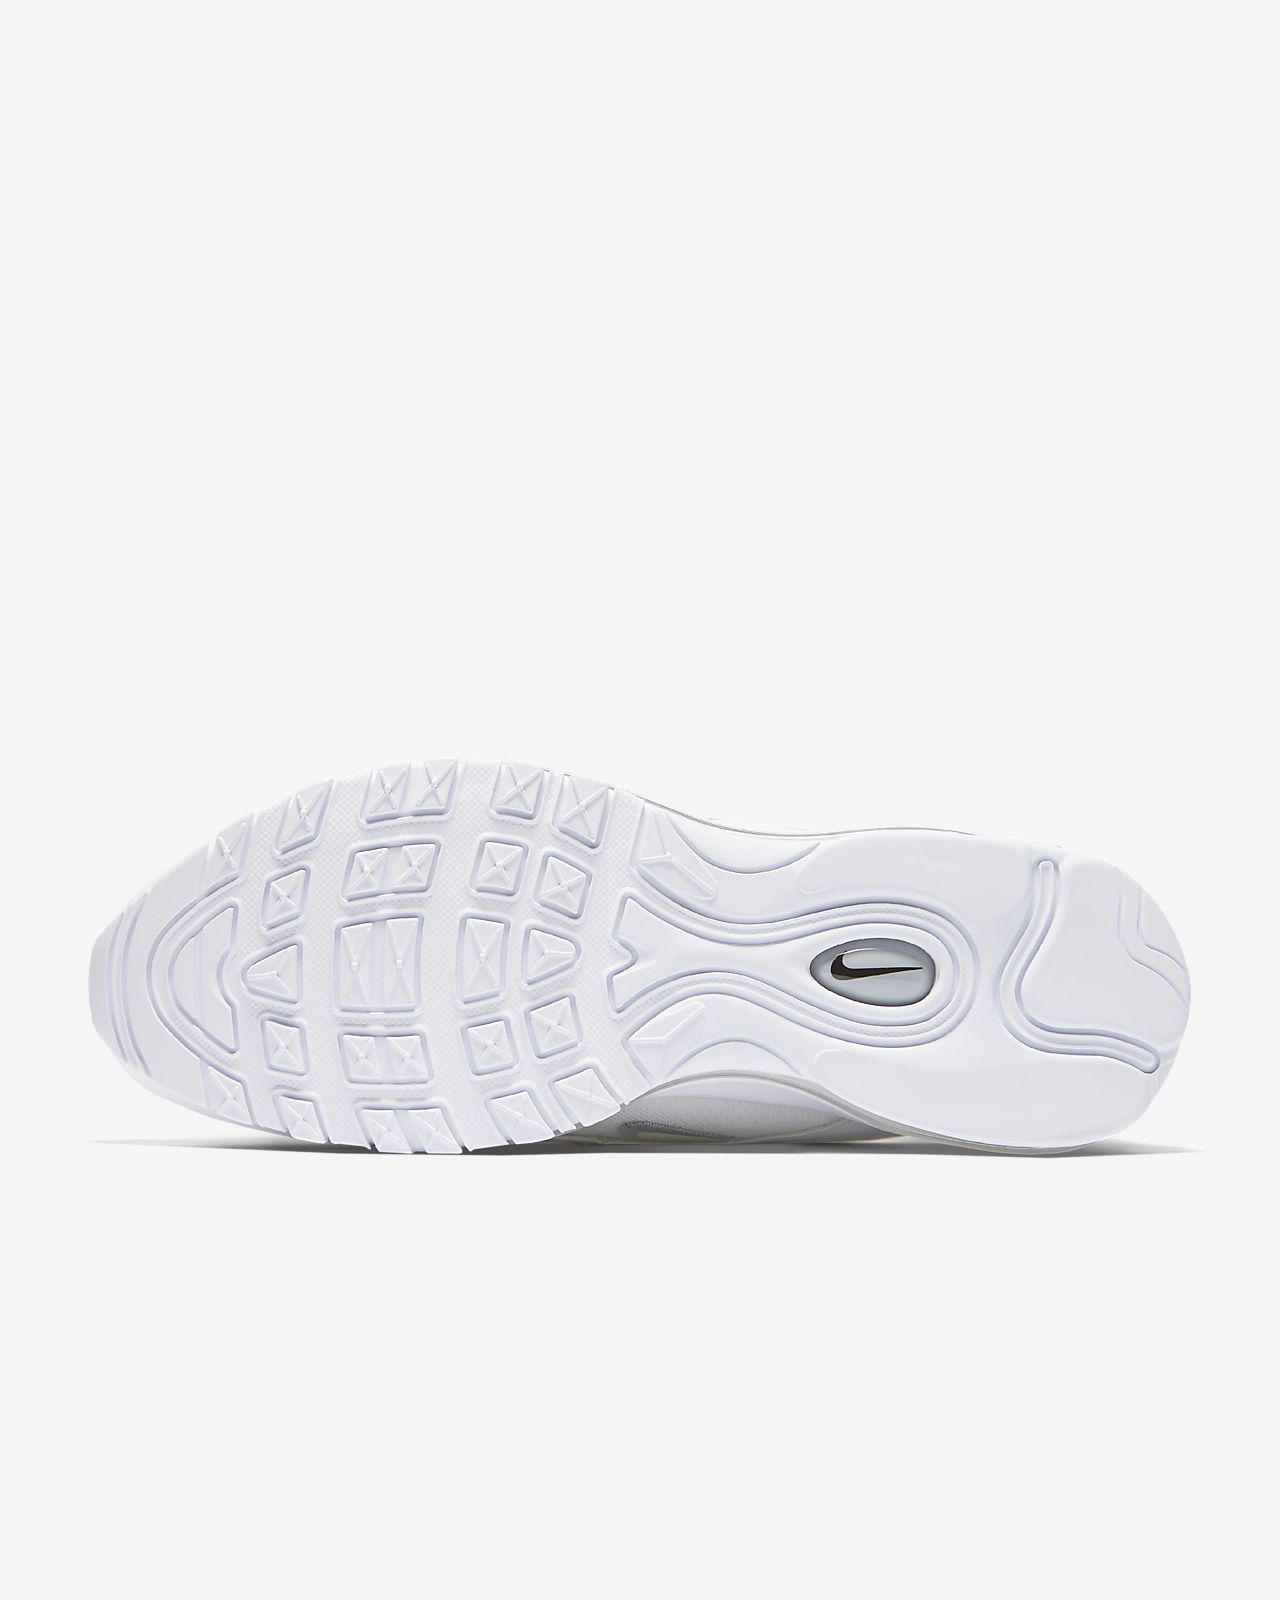 5c768e6b7d7f Nike Air Max 97 Men s Shoe. Nike.com